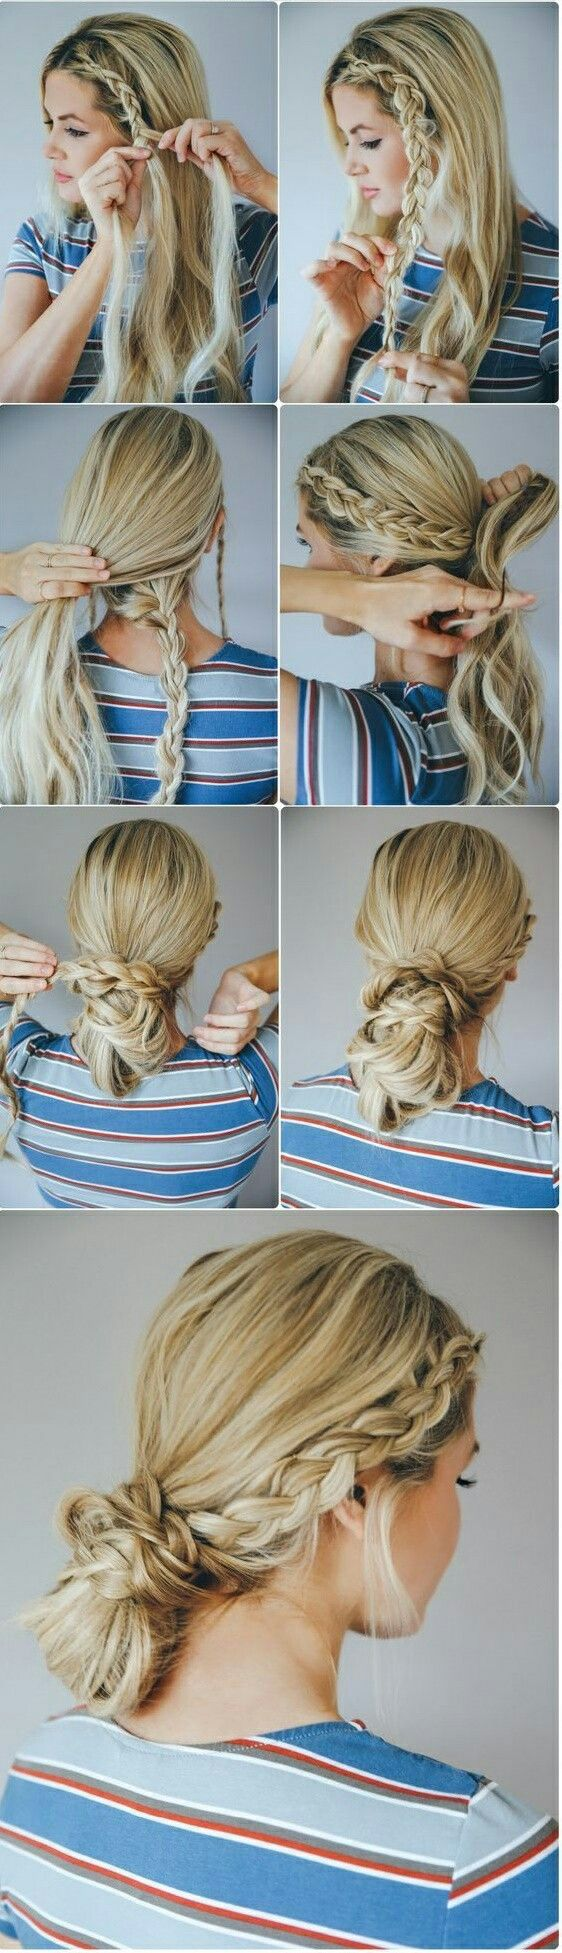 Pin by kelly eastman on beauty pinterest hair style braid